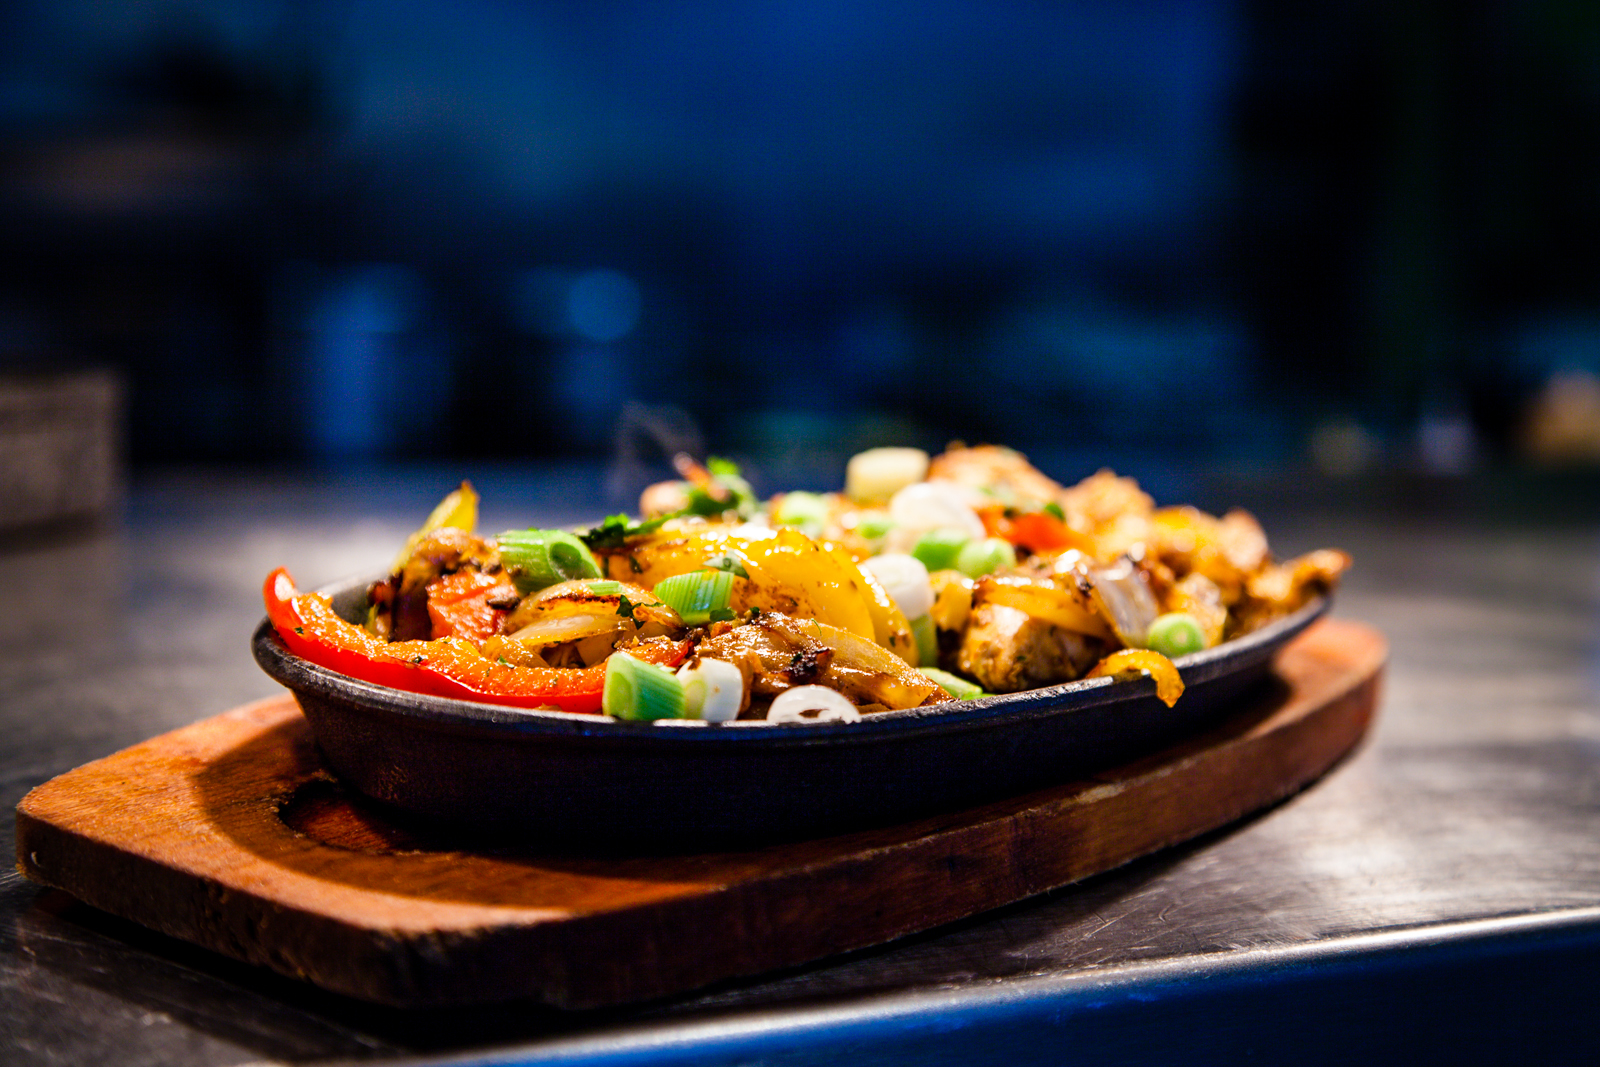 Reserve a table at Las Iguanas - Stratford Westfield